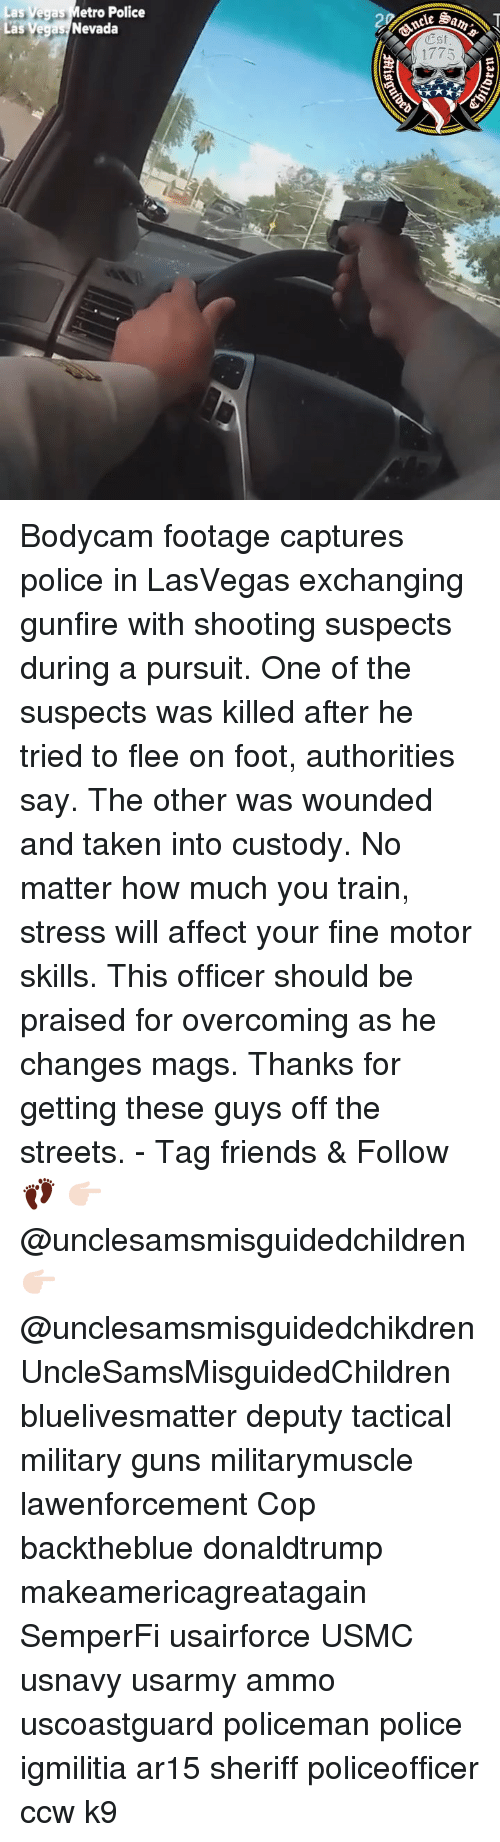 Friends, Guns, and Memes: as Vegas Metro Police  as Vegas Nevada  Est  1775 Bodycam footage captures police in LasVegas exchanging gunfire with shooting suspects during a pursuit. One of the suspects was killed after he tried to flee on foot, authorities say. The other was wounded and taken into custody. No matter how much you train, stress will affect your fine motor skills. This officer should be praised for overcoming as he changes mags. Thanks for getting these guys off the streets. - Tag friends & Follow 👣 👉🏻 @unclesamsmisguidedchildren 👉🏻 @unclesamsmisguidedchikdren UncleSamsMisguidedChildren bluelivesmatter deputy tactical military guns militarymuscle lawenforcement Cop backtheblue donaldtrump makeamericagreatagain SemperFi usairforce USMC usnavy usarmy ammo uscoastguard policeman police igmilitia ar15 sheriff policeofficer ccw k9